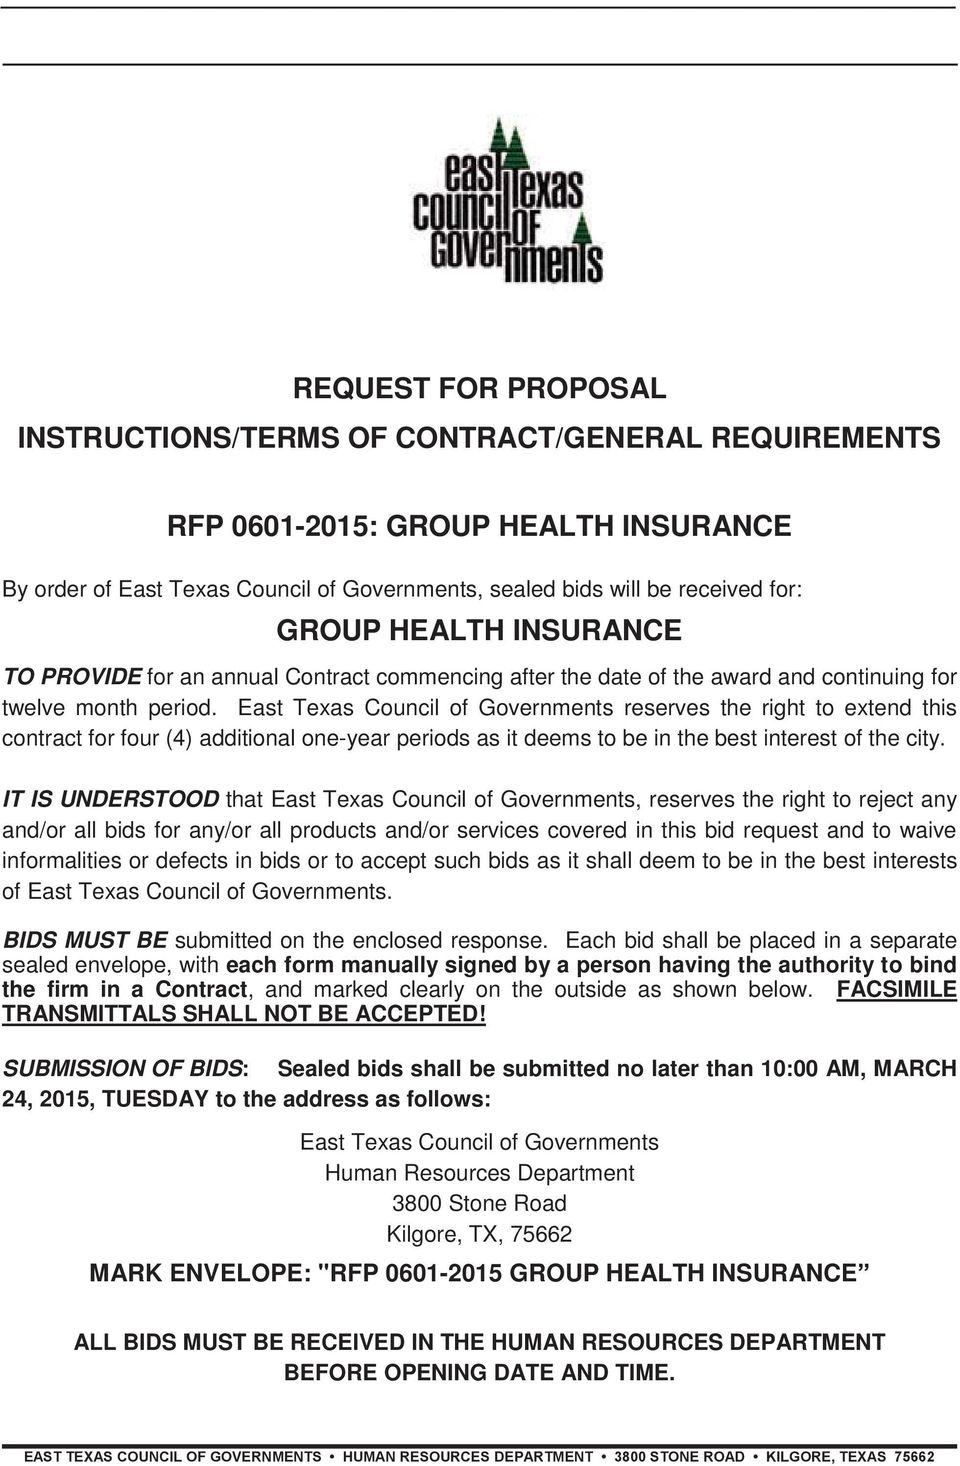 East Texas Council of Governments reserves the right to extend this contract for four (4) additional one-year periods as it deems to be in the best interest of the city.